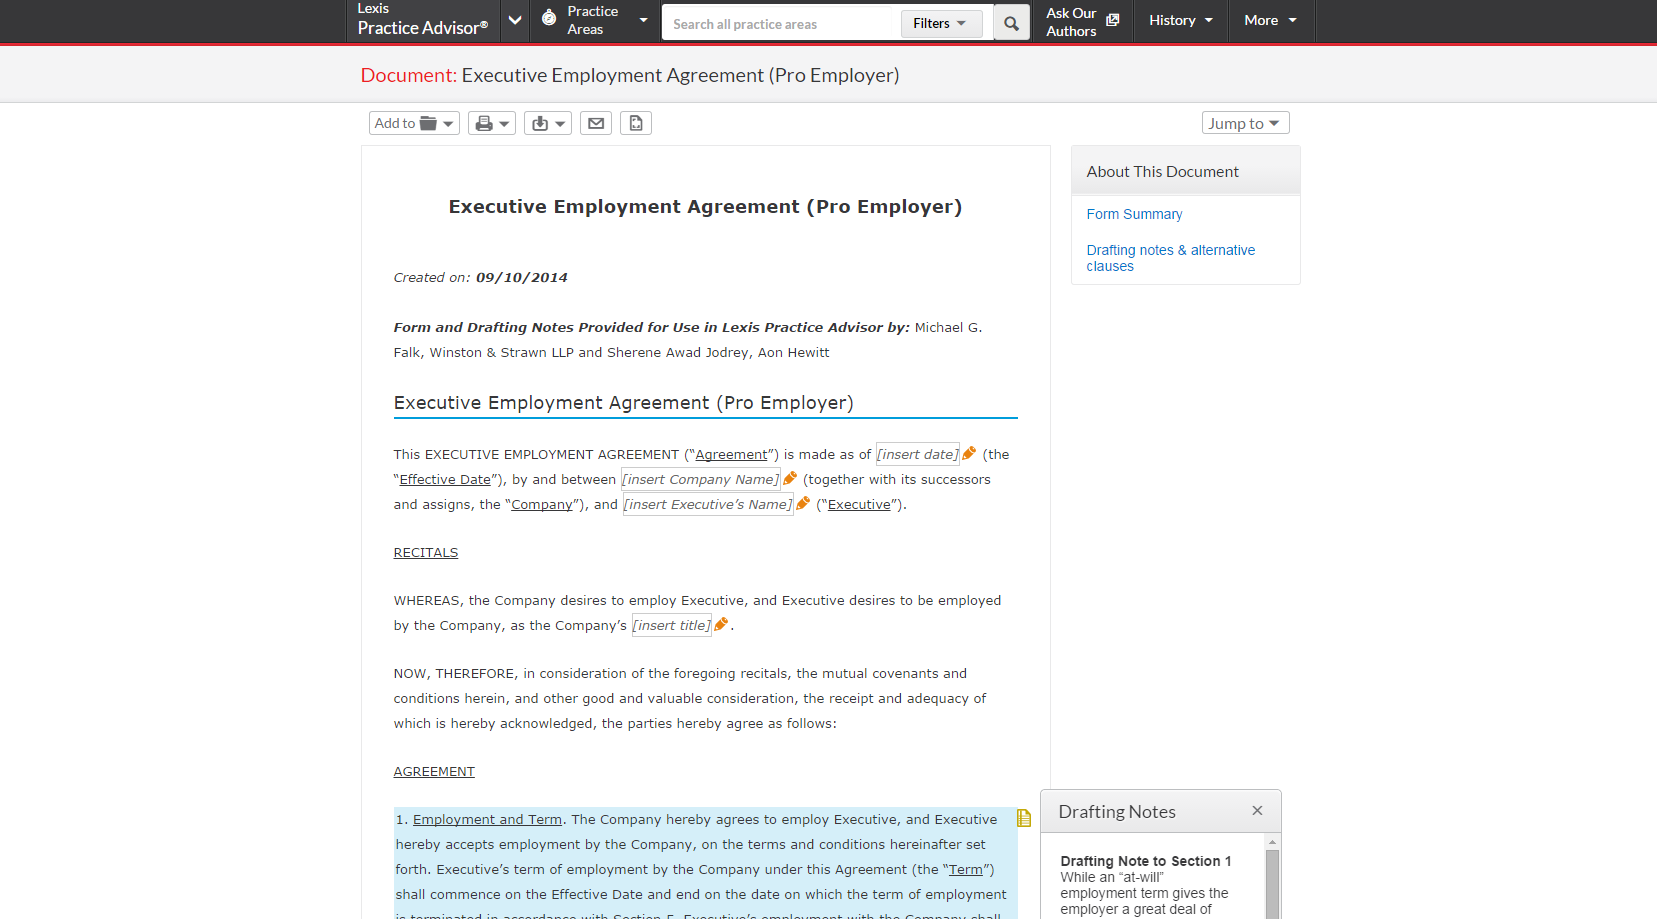 LexisNexis Expands Lexis Practice Advisor with Labor Employment – Executive Employment Agreement